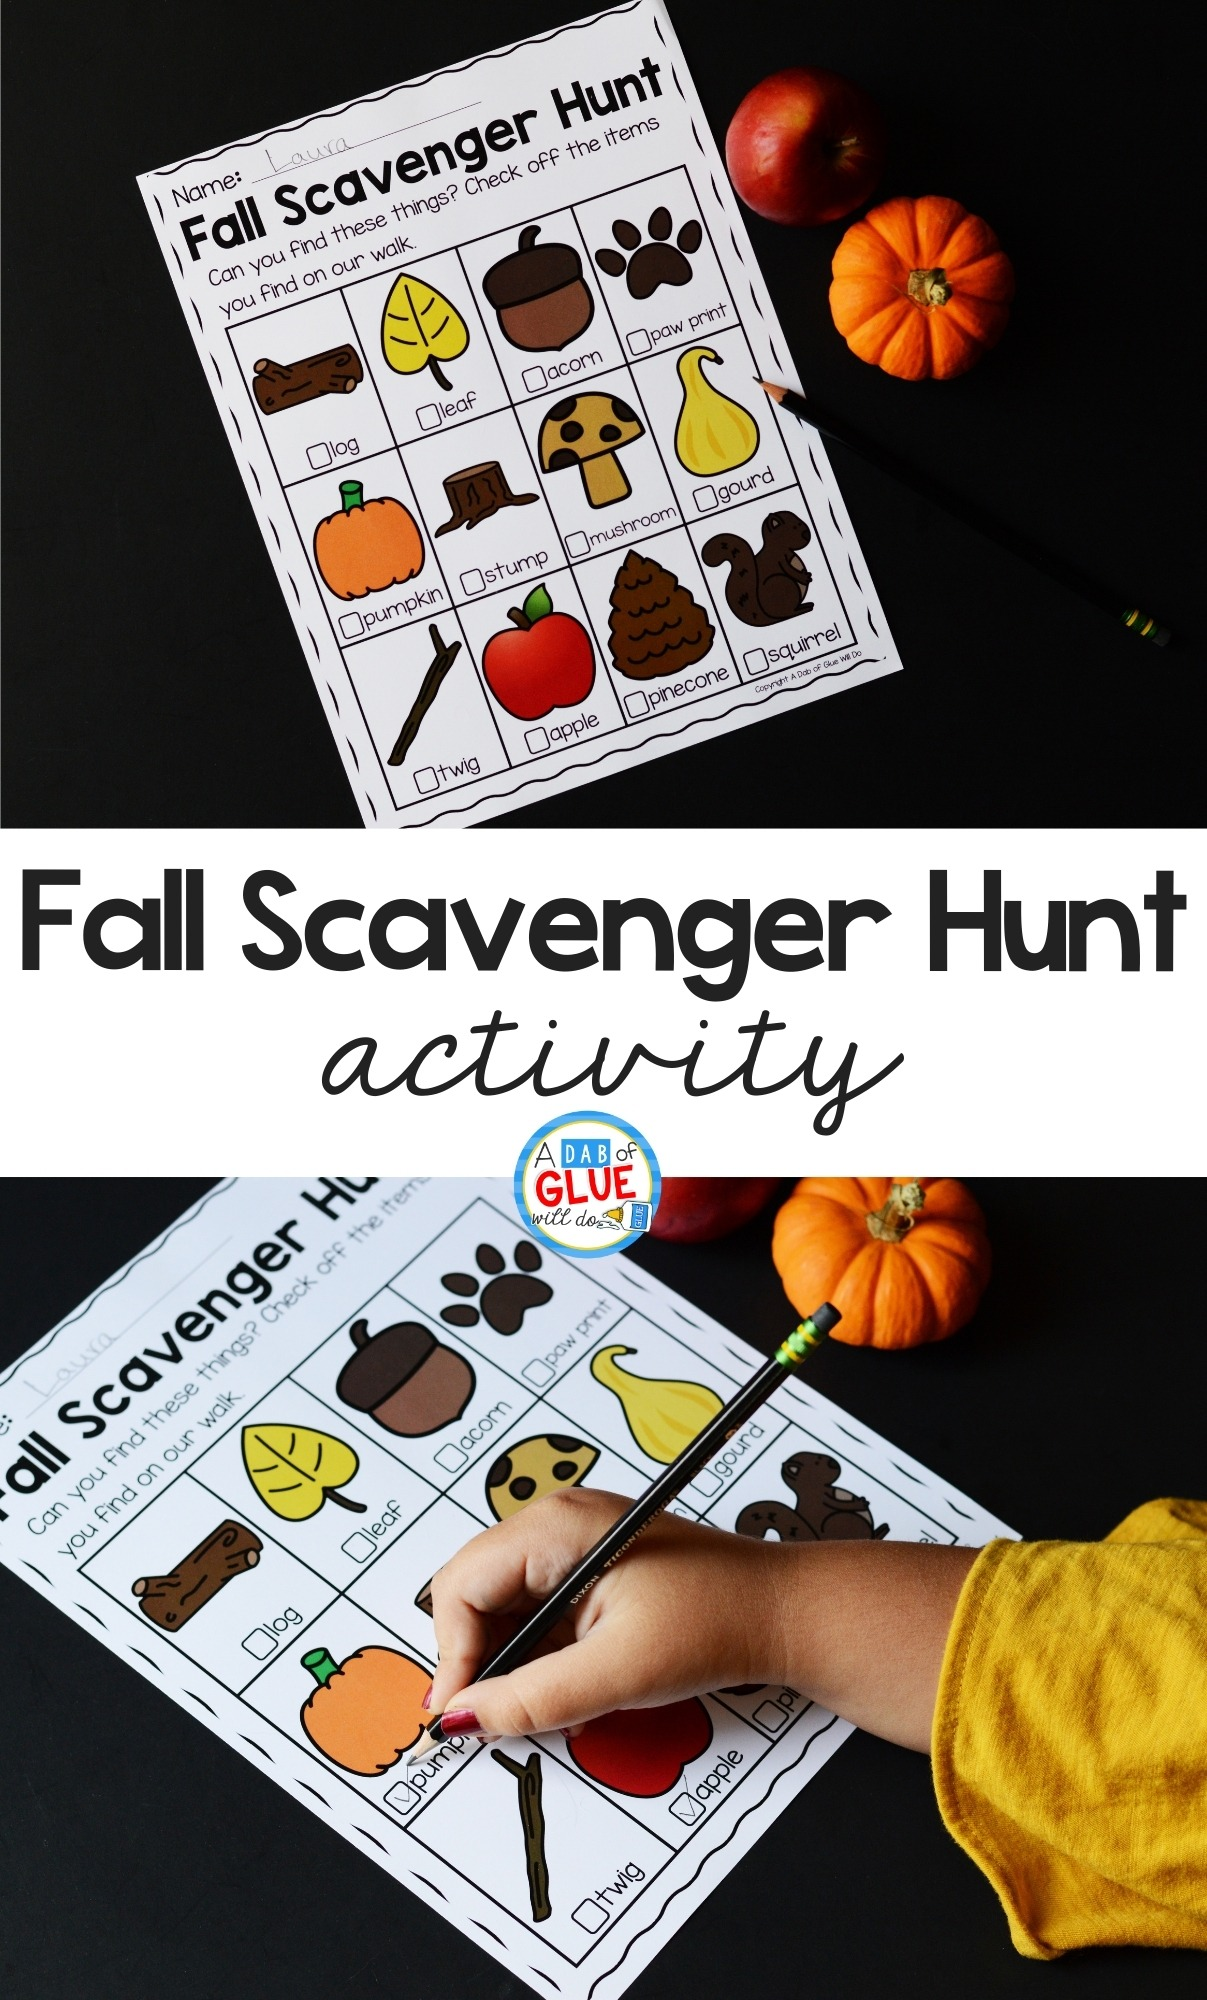 Fall Scavenger Hunt activity Pinterest image.